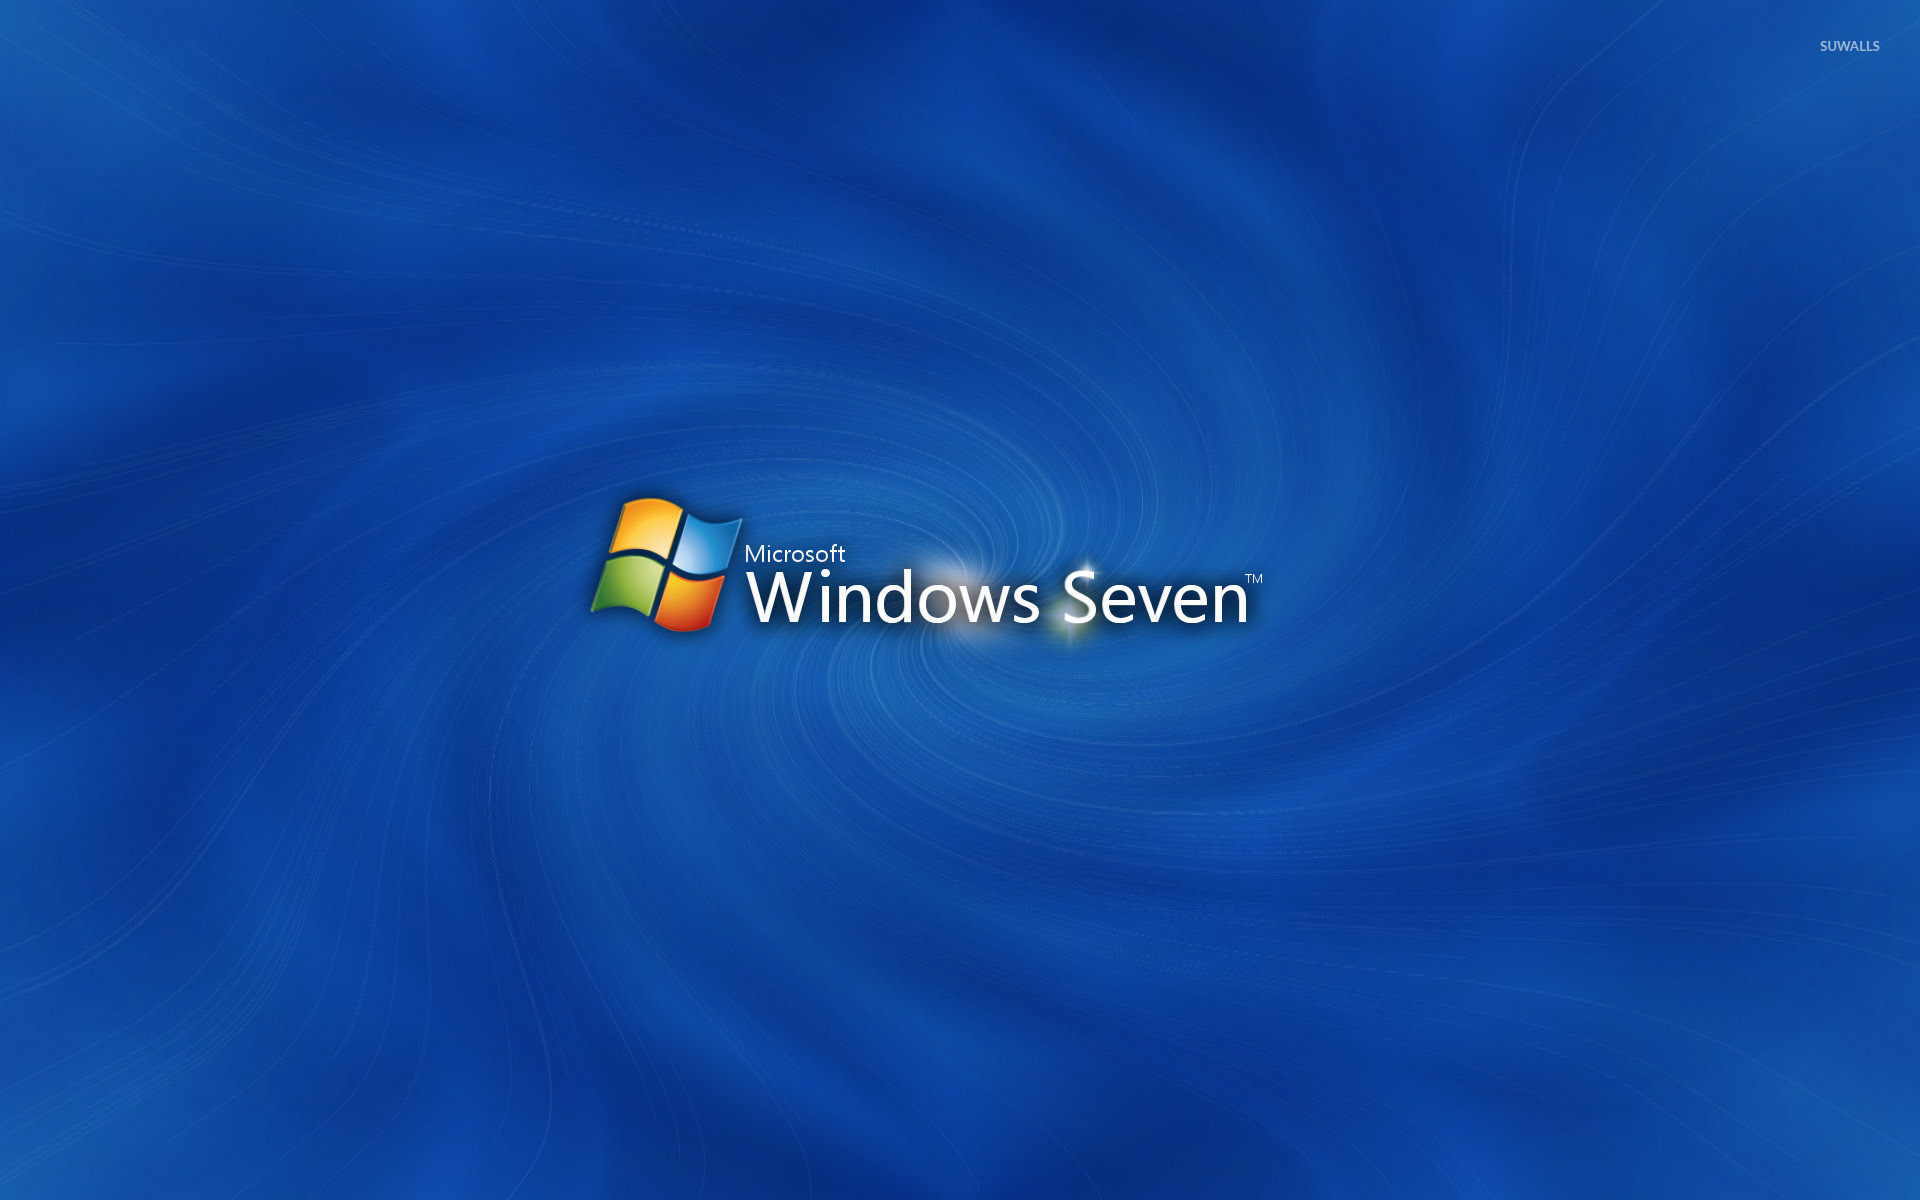 Windows 7 Home Premium Wallpaper ·① WallpaperTag